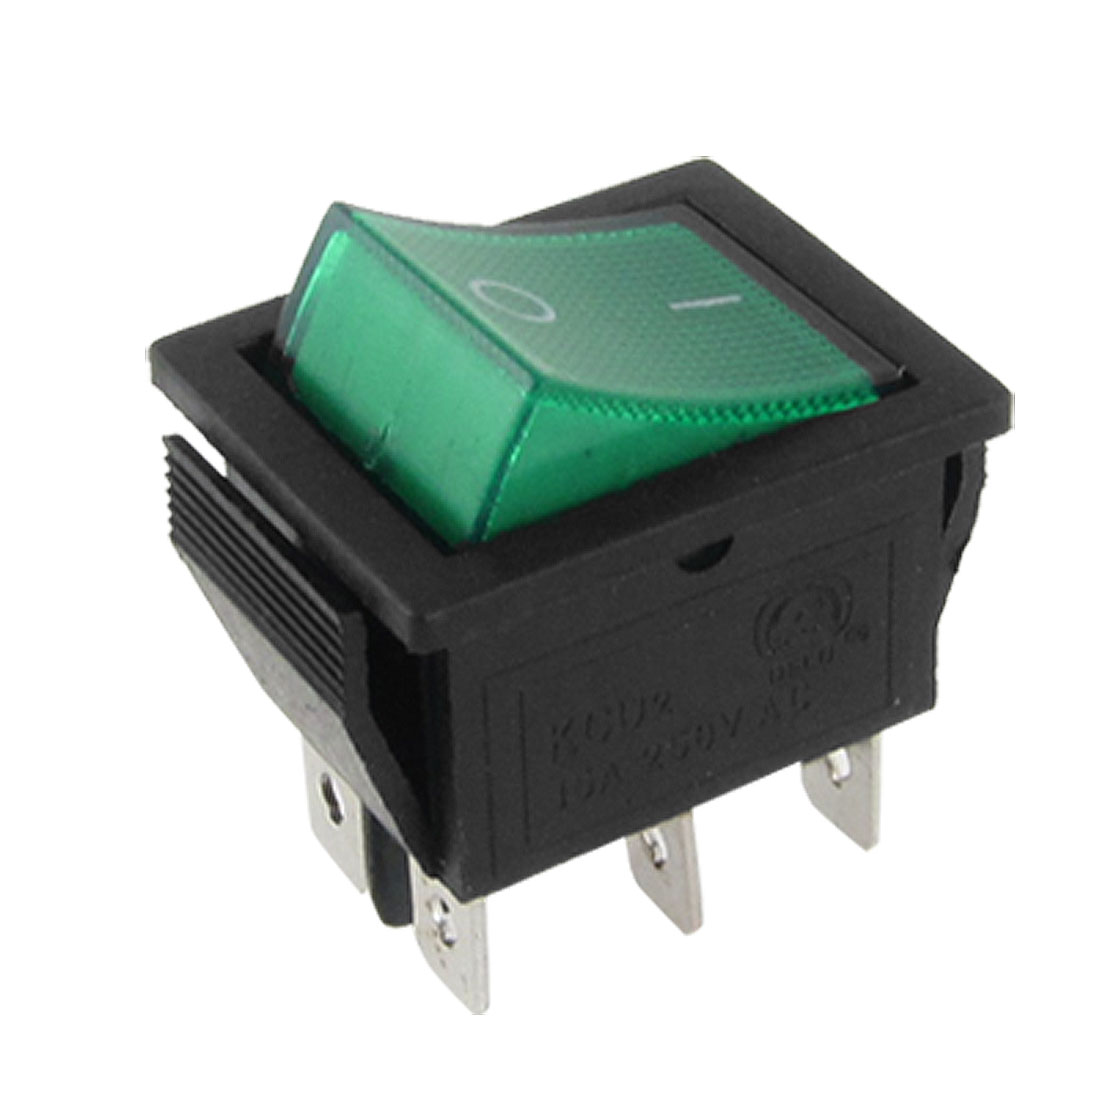 AC 250V 15A Green Light Illuminated 6 Pin DPDT ON/ON Boat Rocker Switch 26x22mm